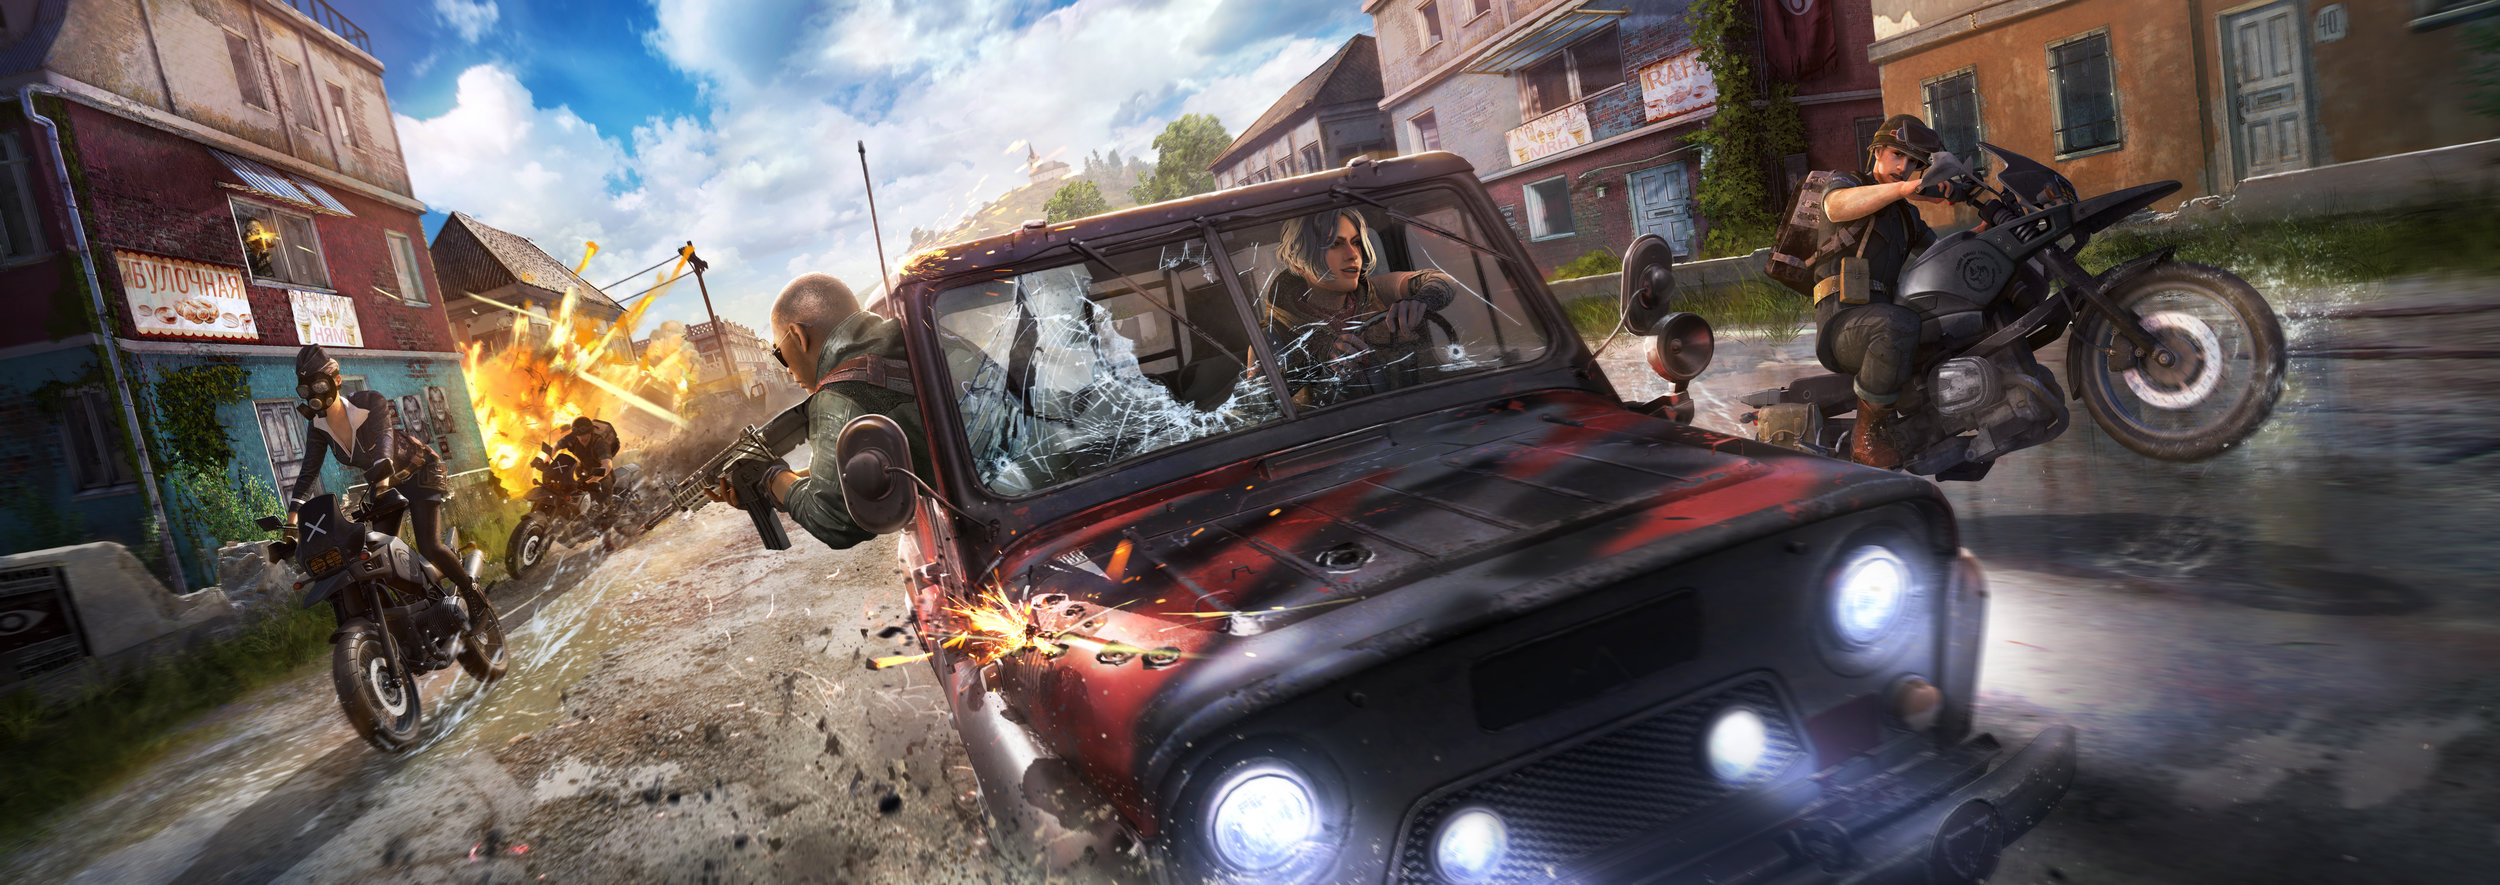 Key art piece created by CAH prior to Season 4 release (Copyright: PUBG Corp.)